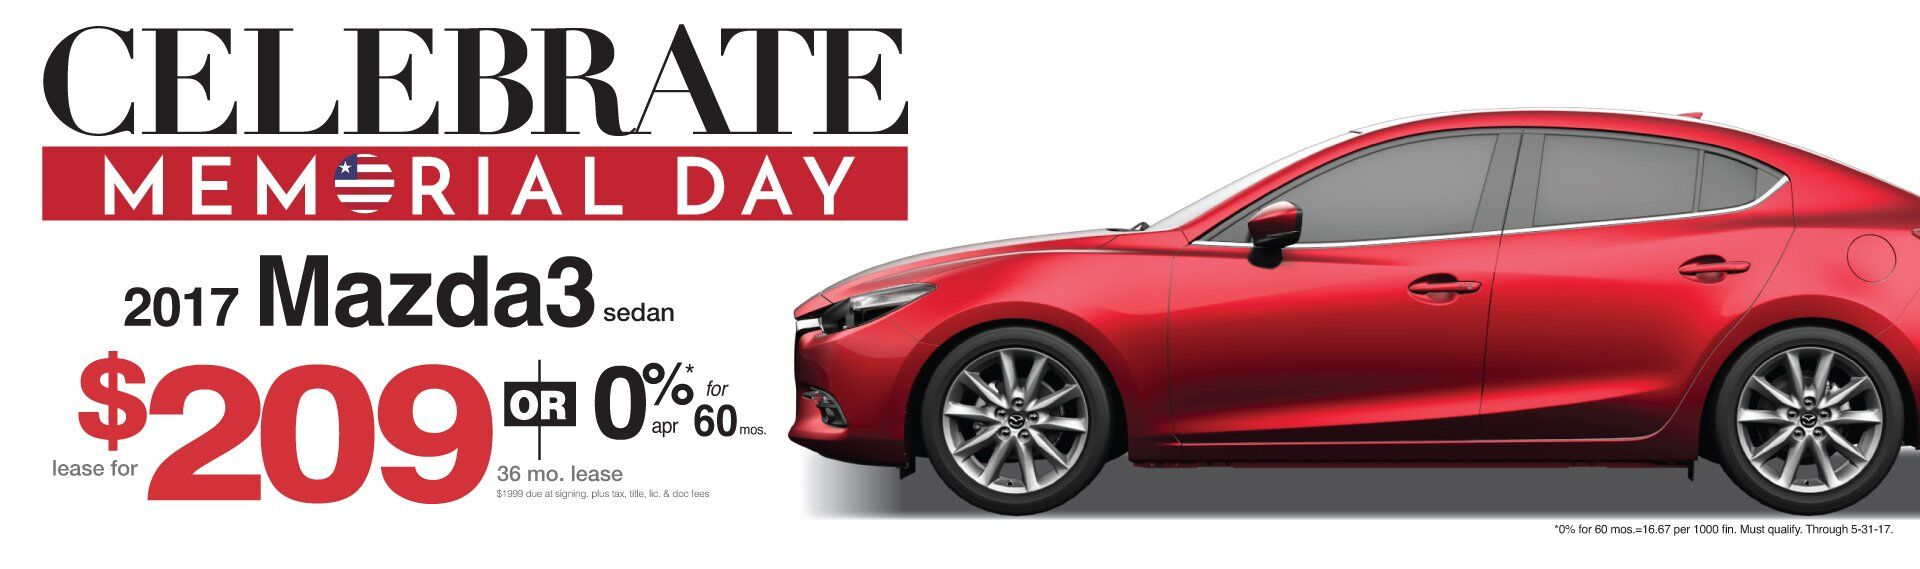 Memorial Day Savings All Month Long on Mazda3